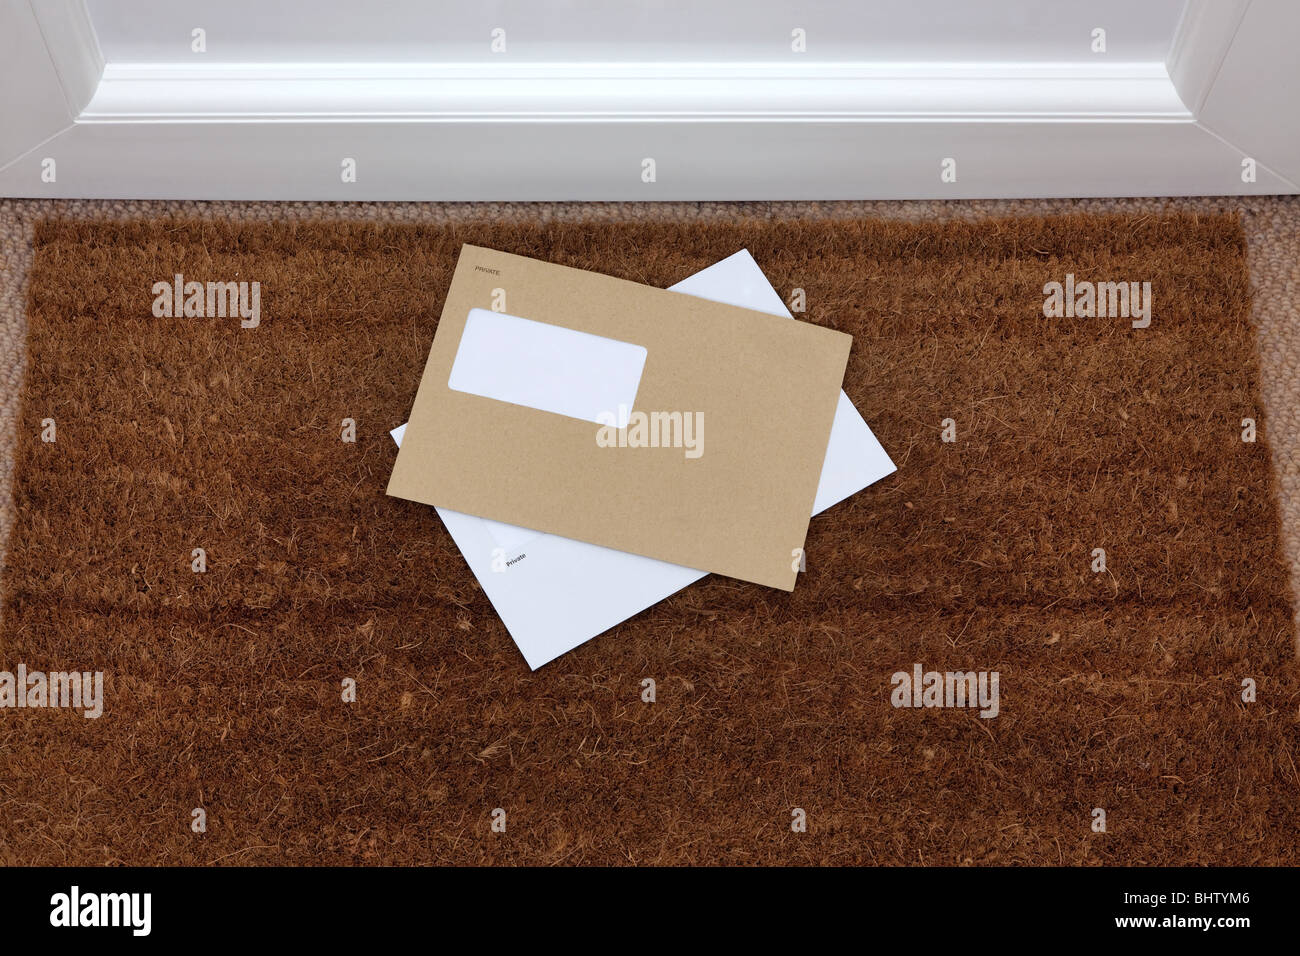 Two envelopes on a doormat, blank window to add your own name and address details. - Stock Image